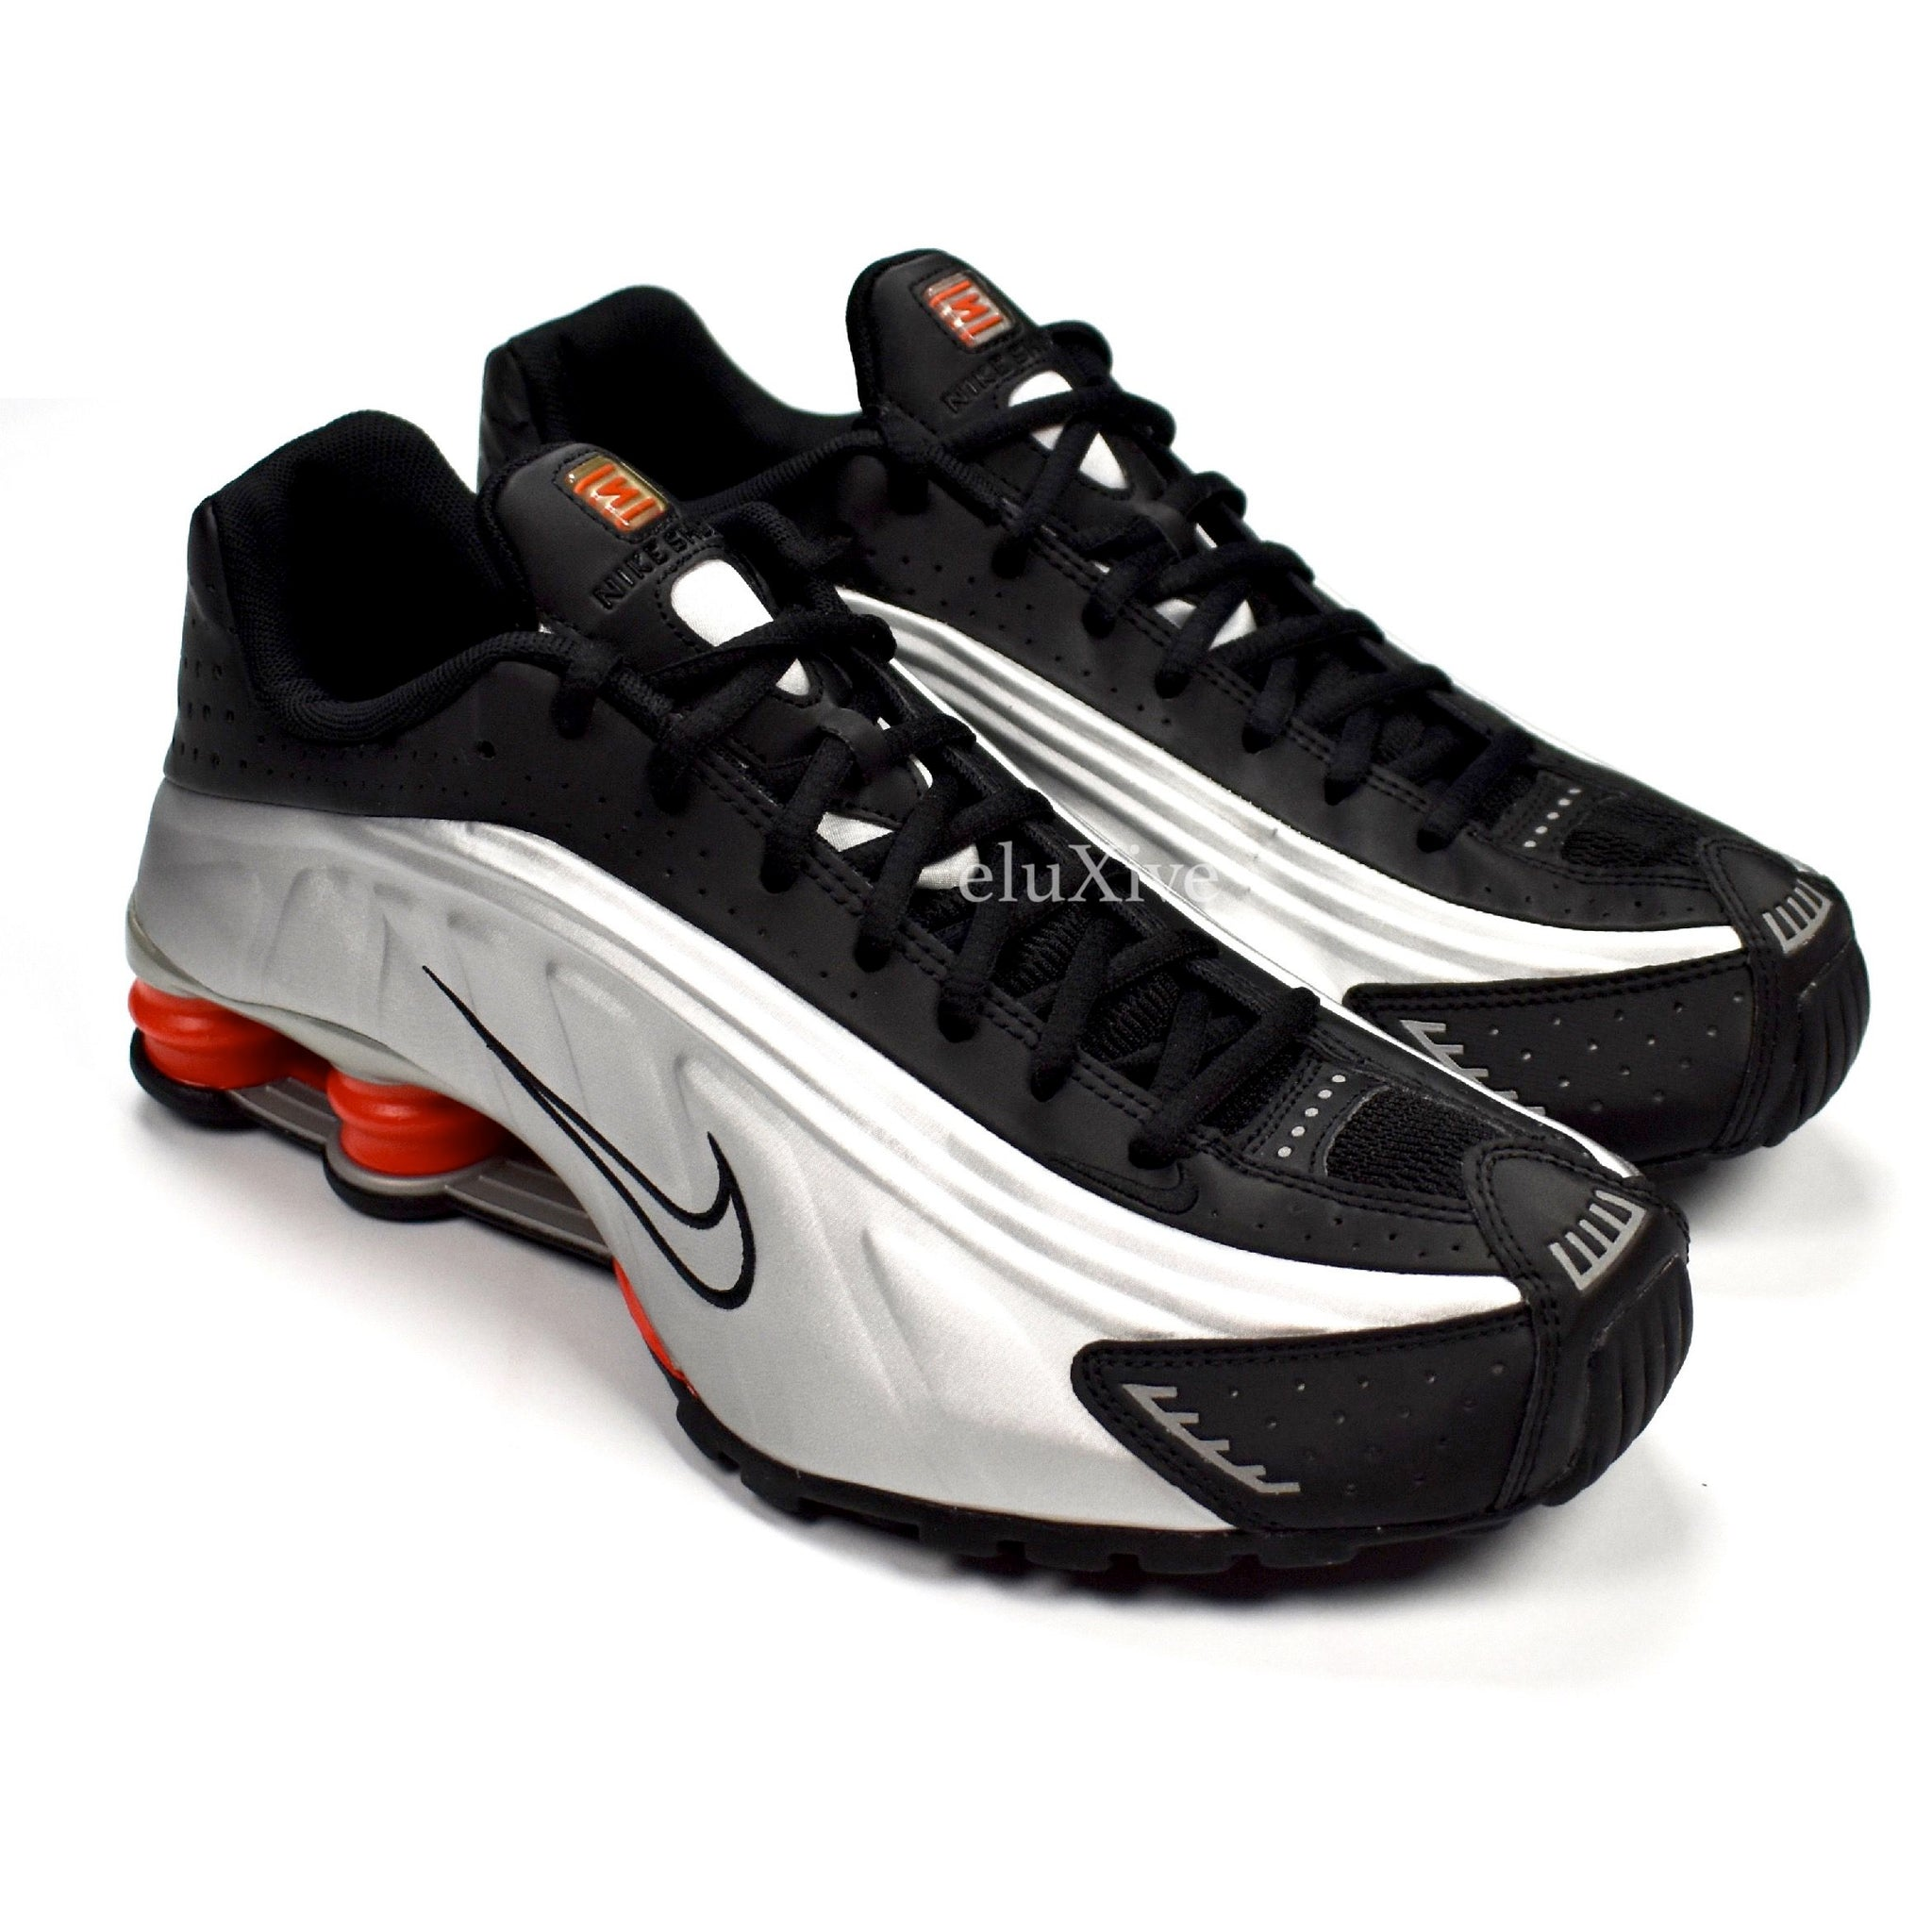 cae74cf2a81971 Nike - Men s Shox R4 OG Metallic Silver   Black   Orange Sneakers ...